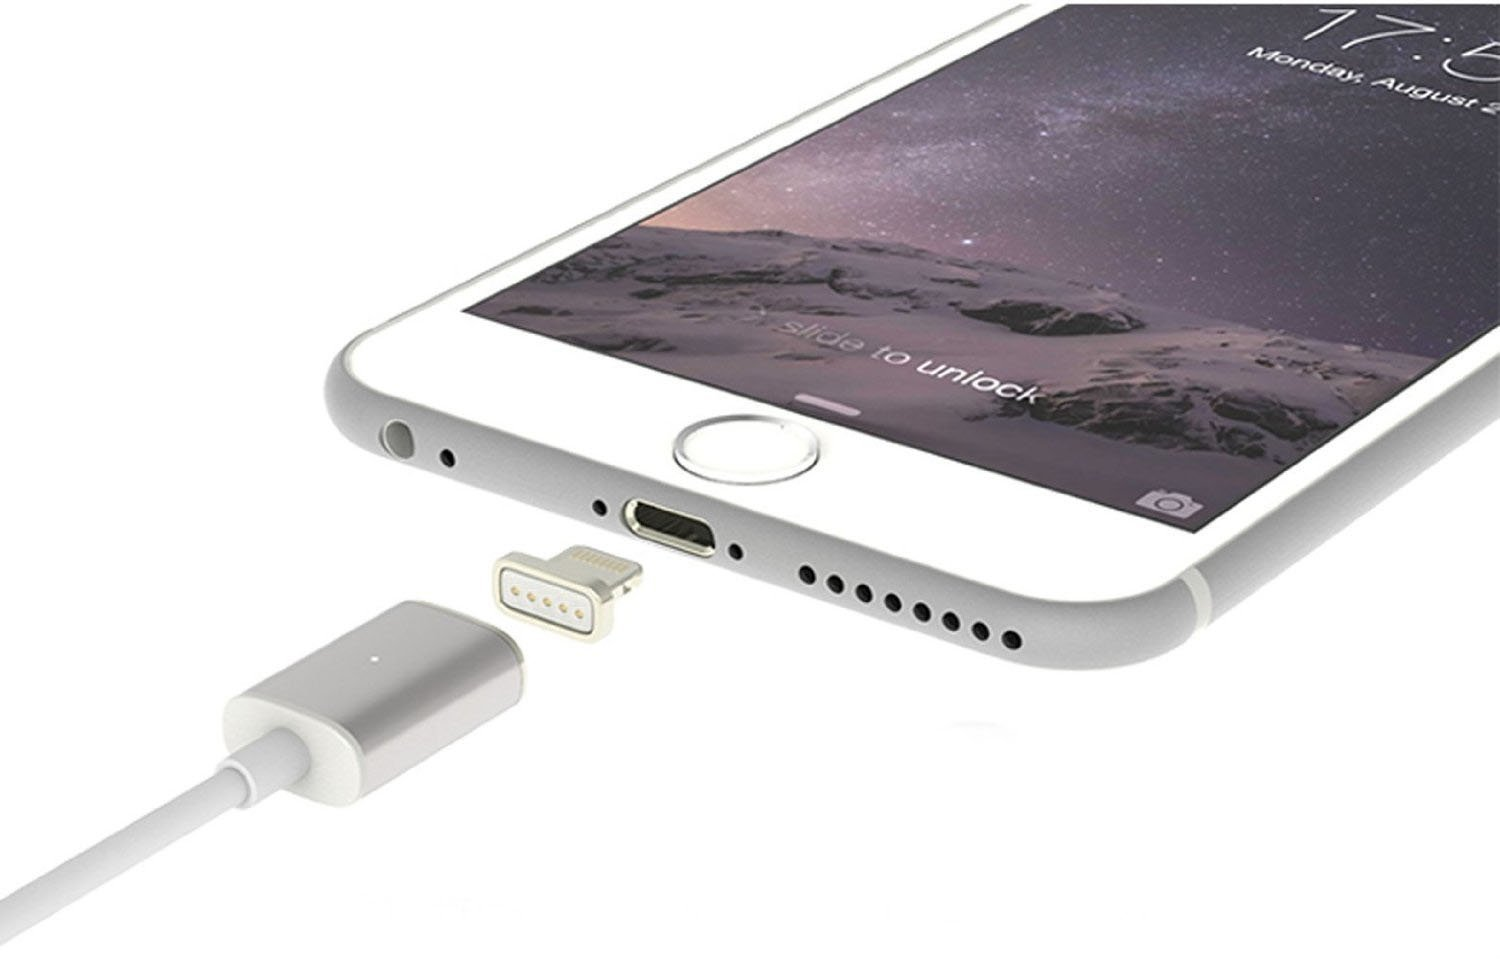 Top 10 Best Kwik Charger iPhone